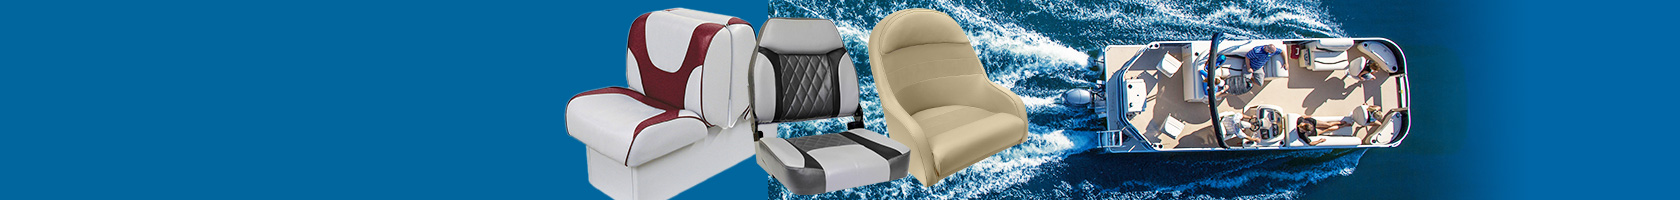 Save up to 20% on boat seats & furniture